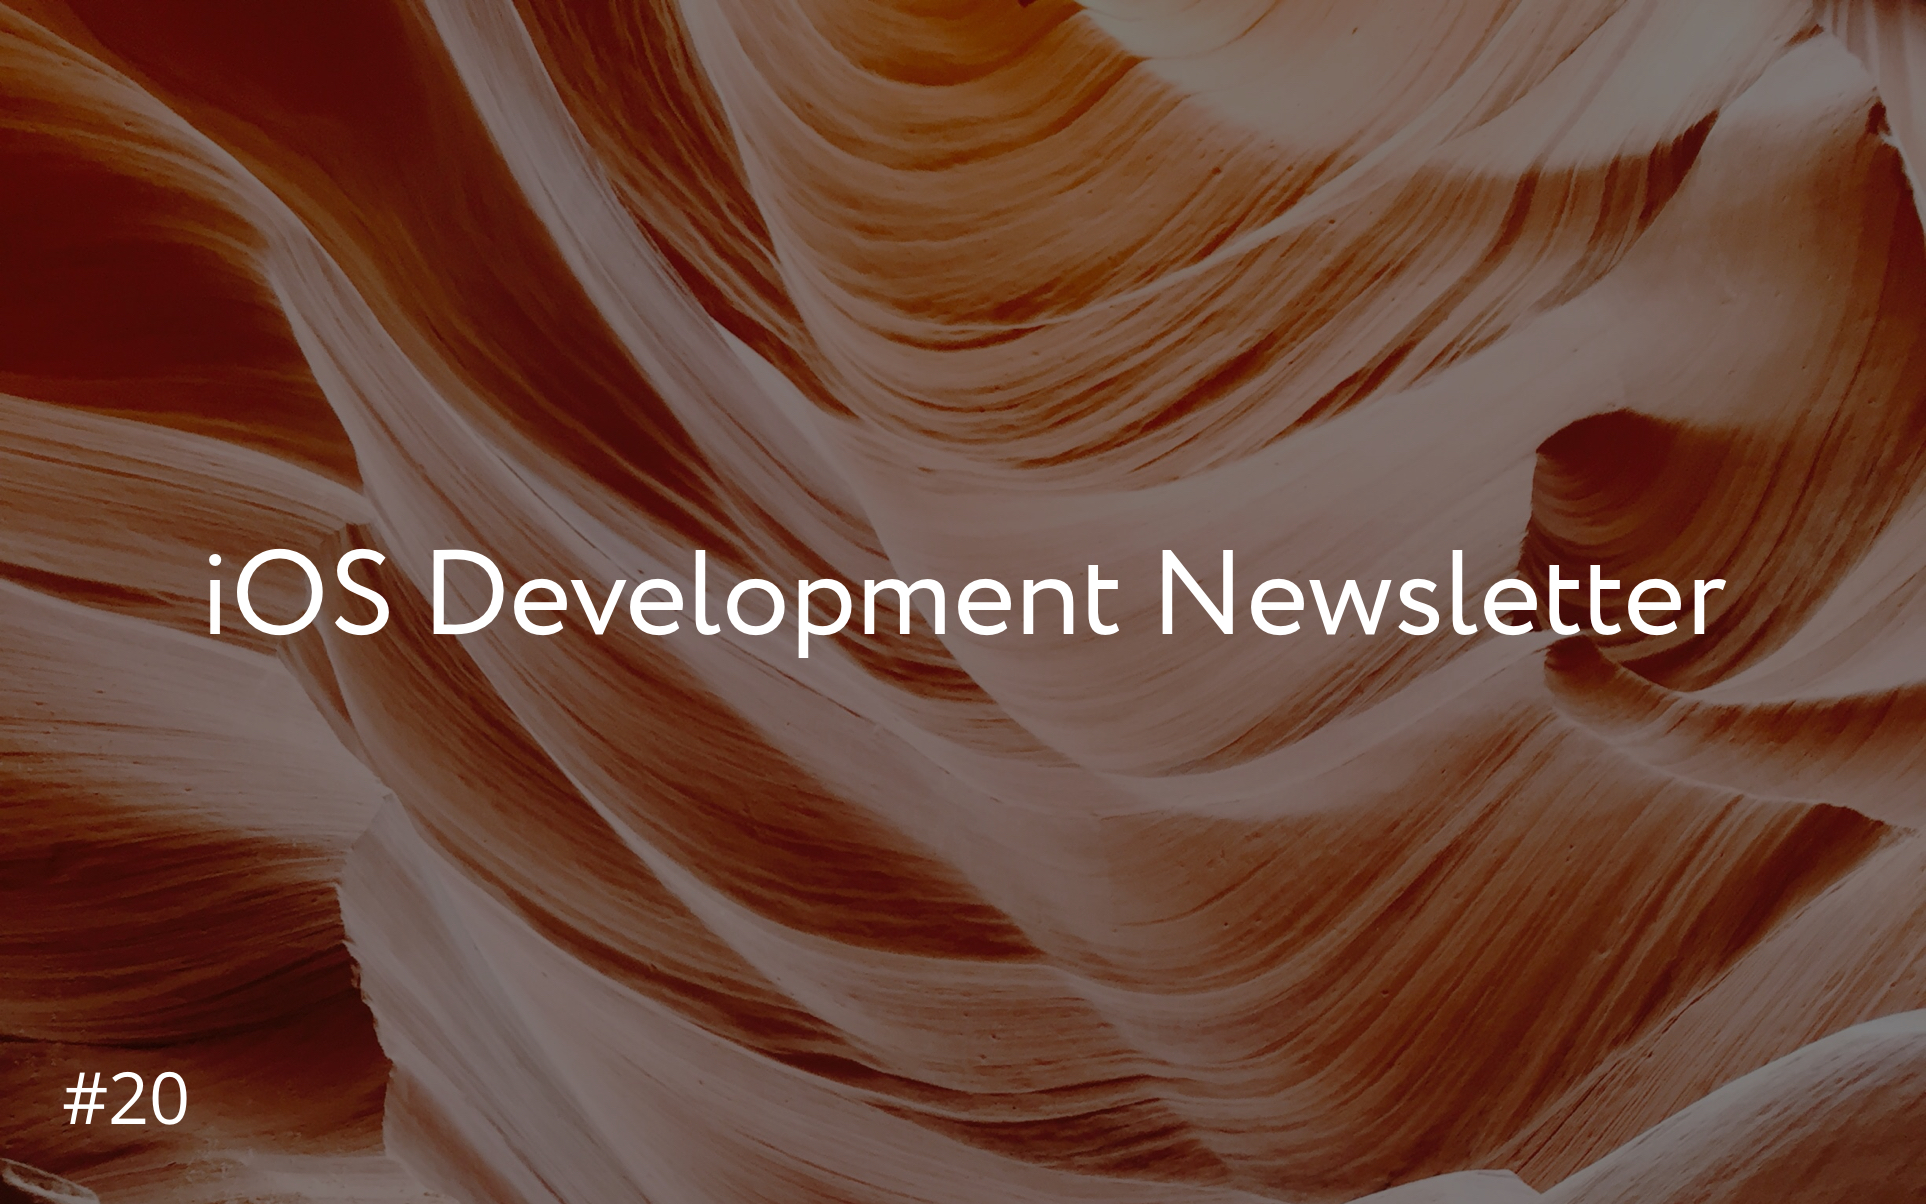 iOS Development Newsletter #20